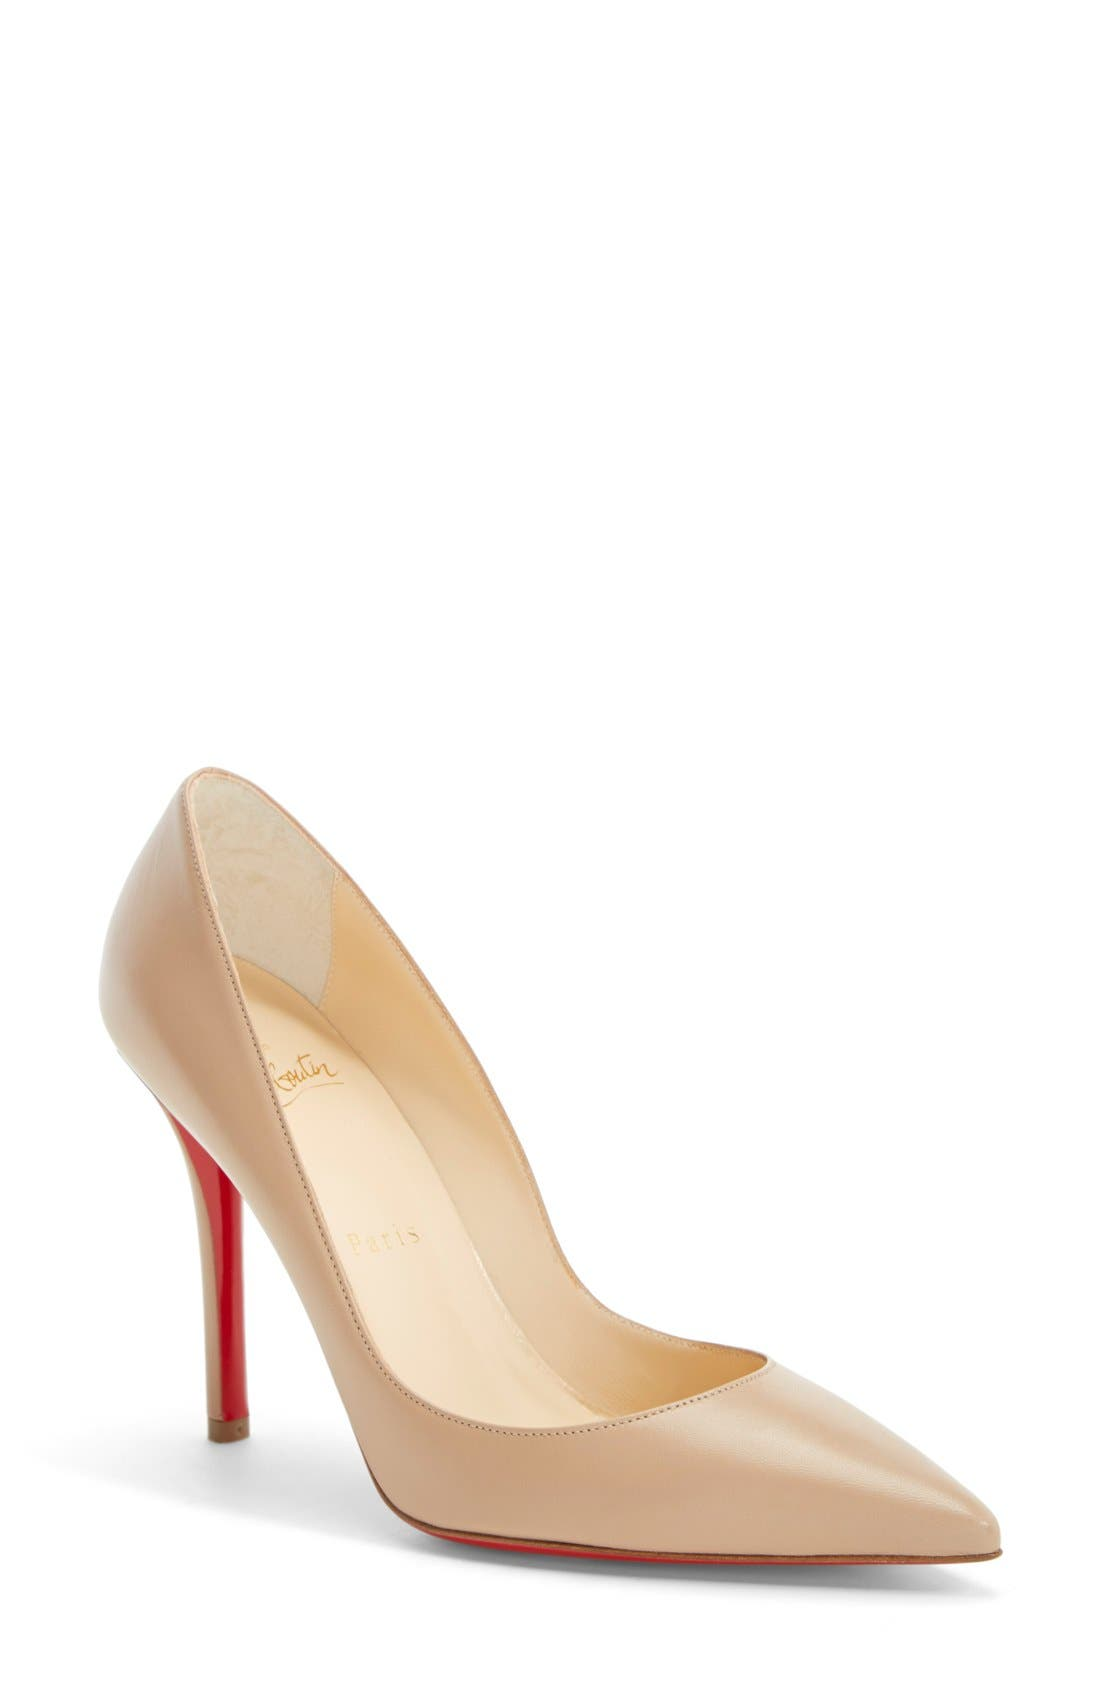 'Apostrophy' Pointy Toe Pump,                             Main thumbnail 5, color,